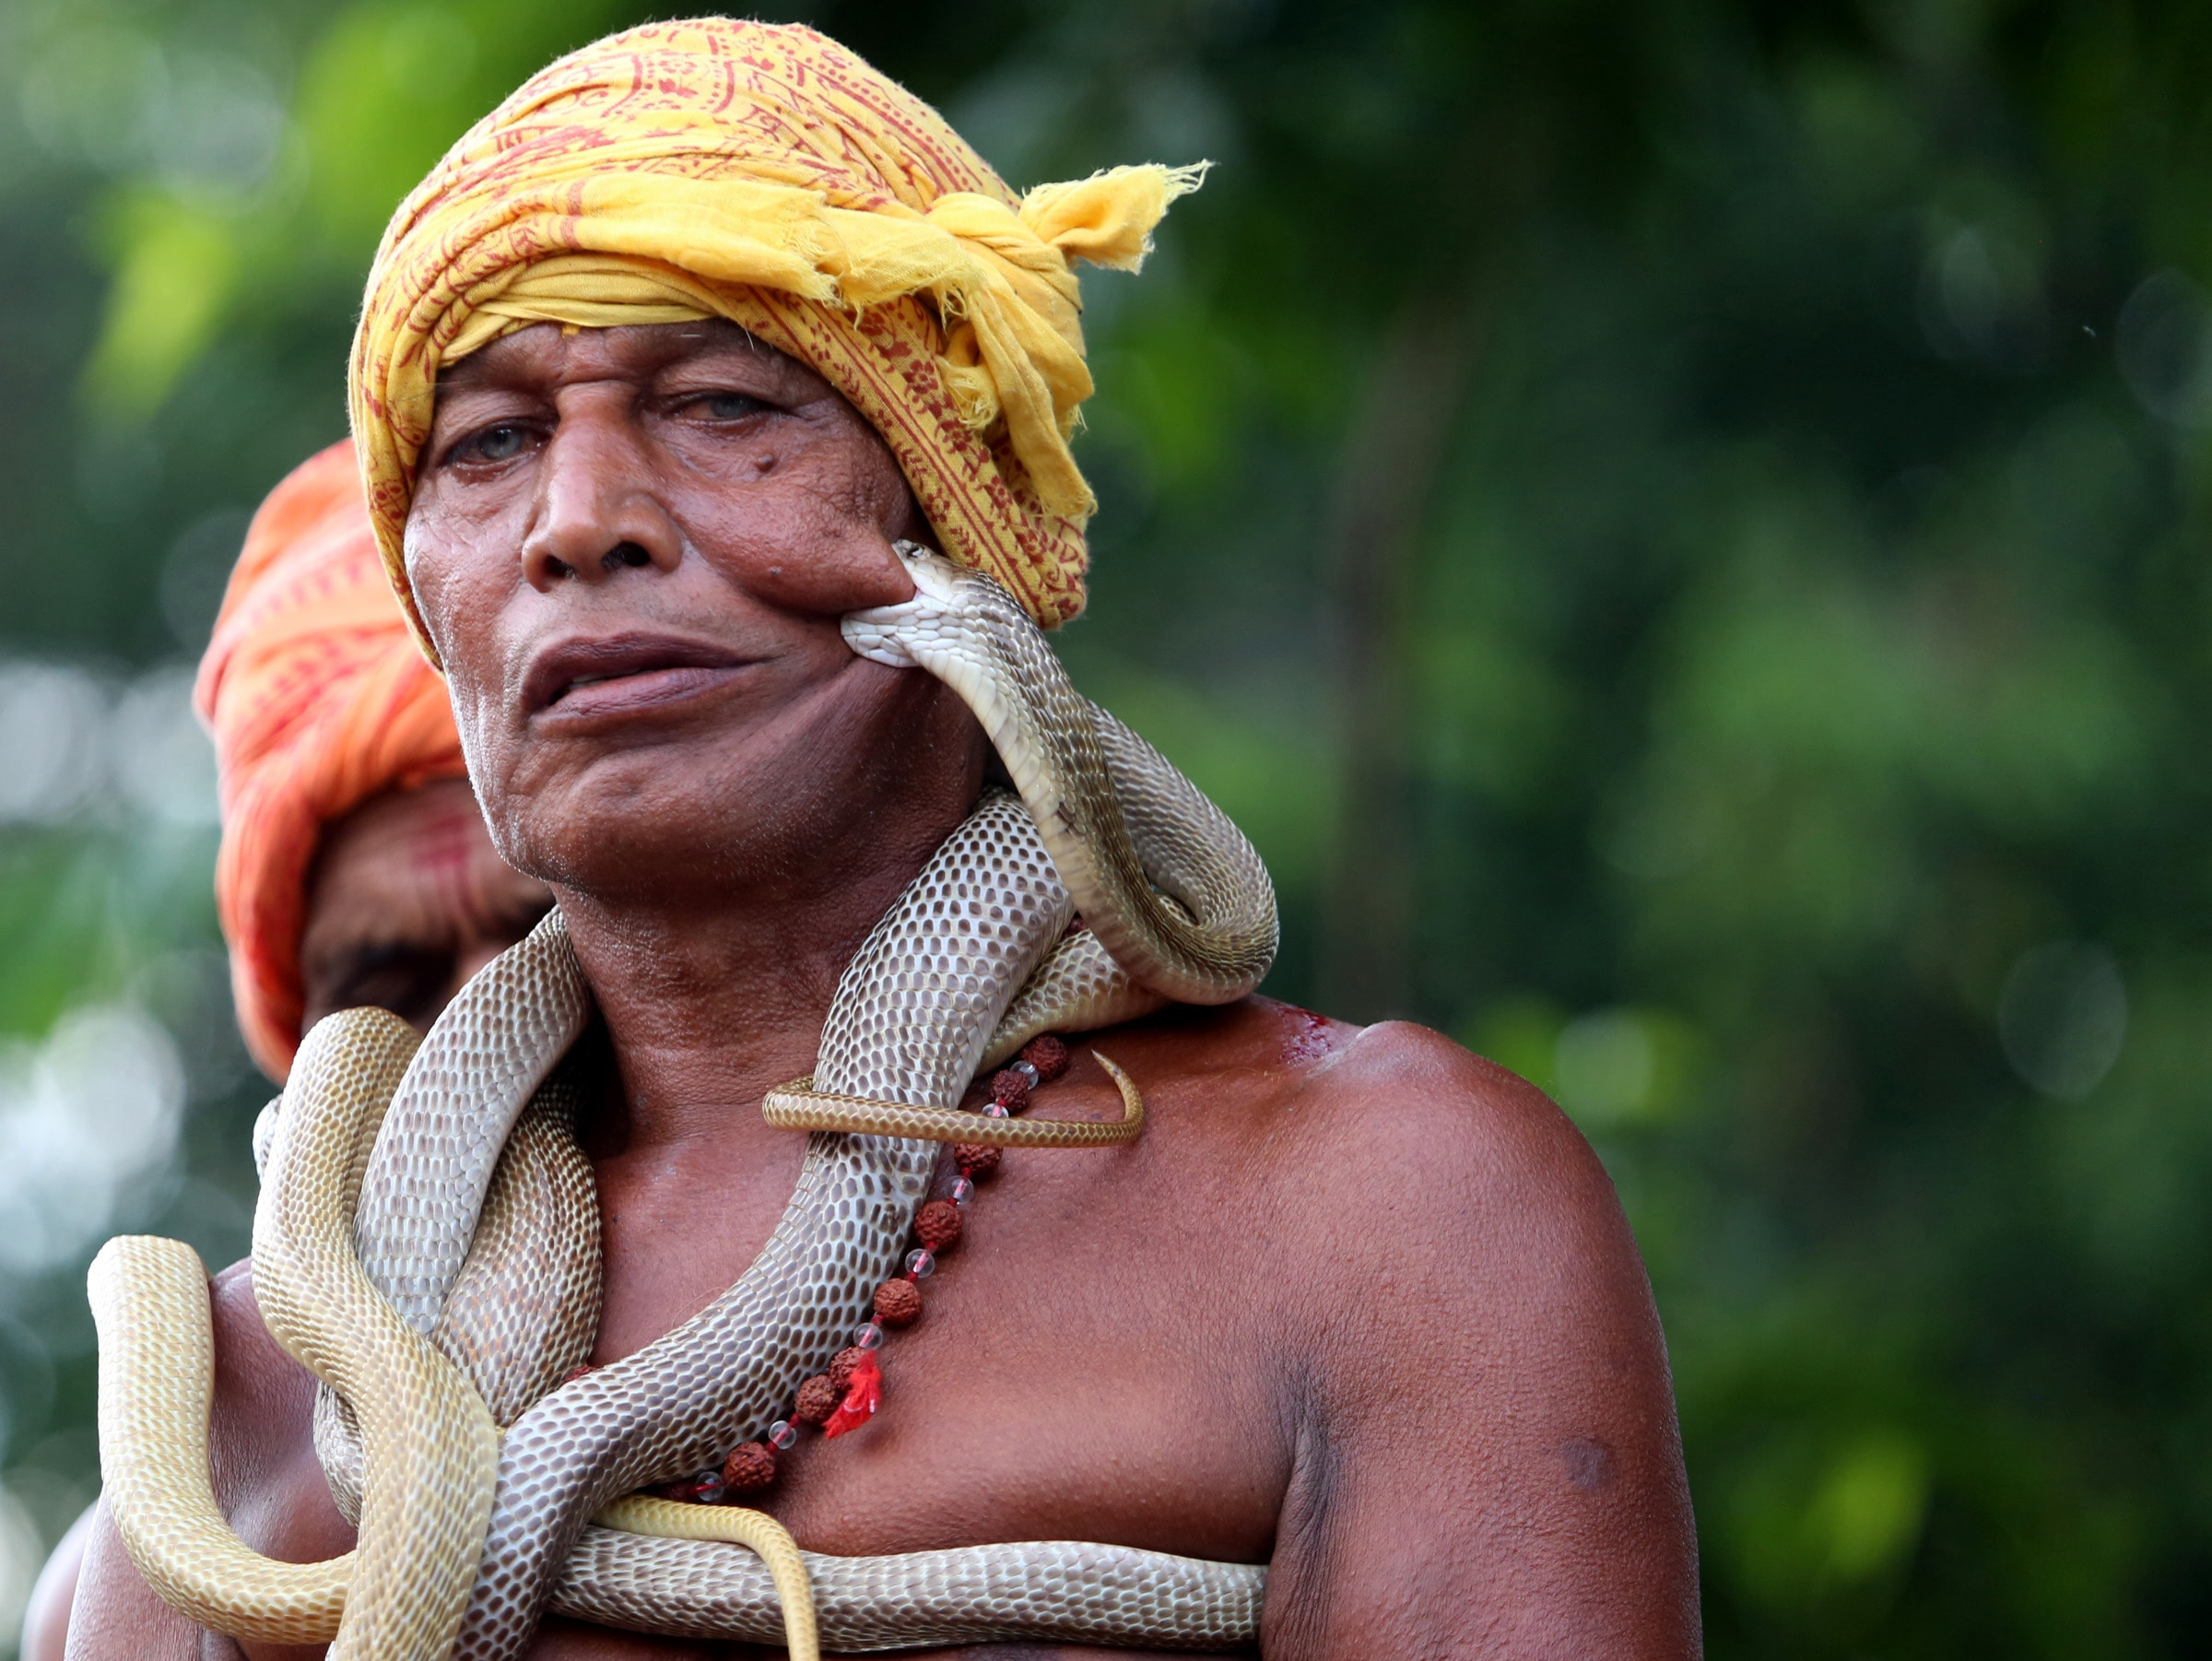 <p>Villagers of Mohlisol at Dhalbhumgarh sub-division under Ghatshila block near Jamshedpur under East Singhbhum district of Jharkhand are seen busy in being bitten by poisonous snakes&#8230;